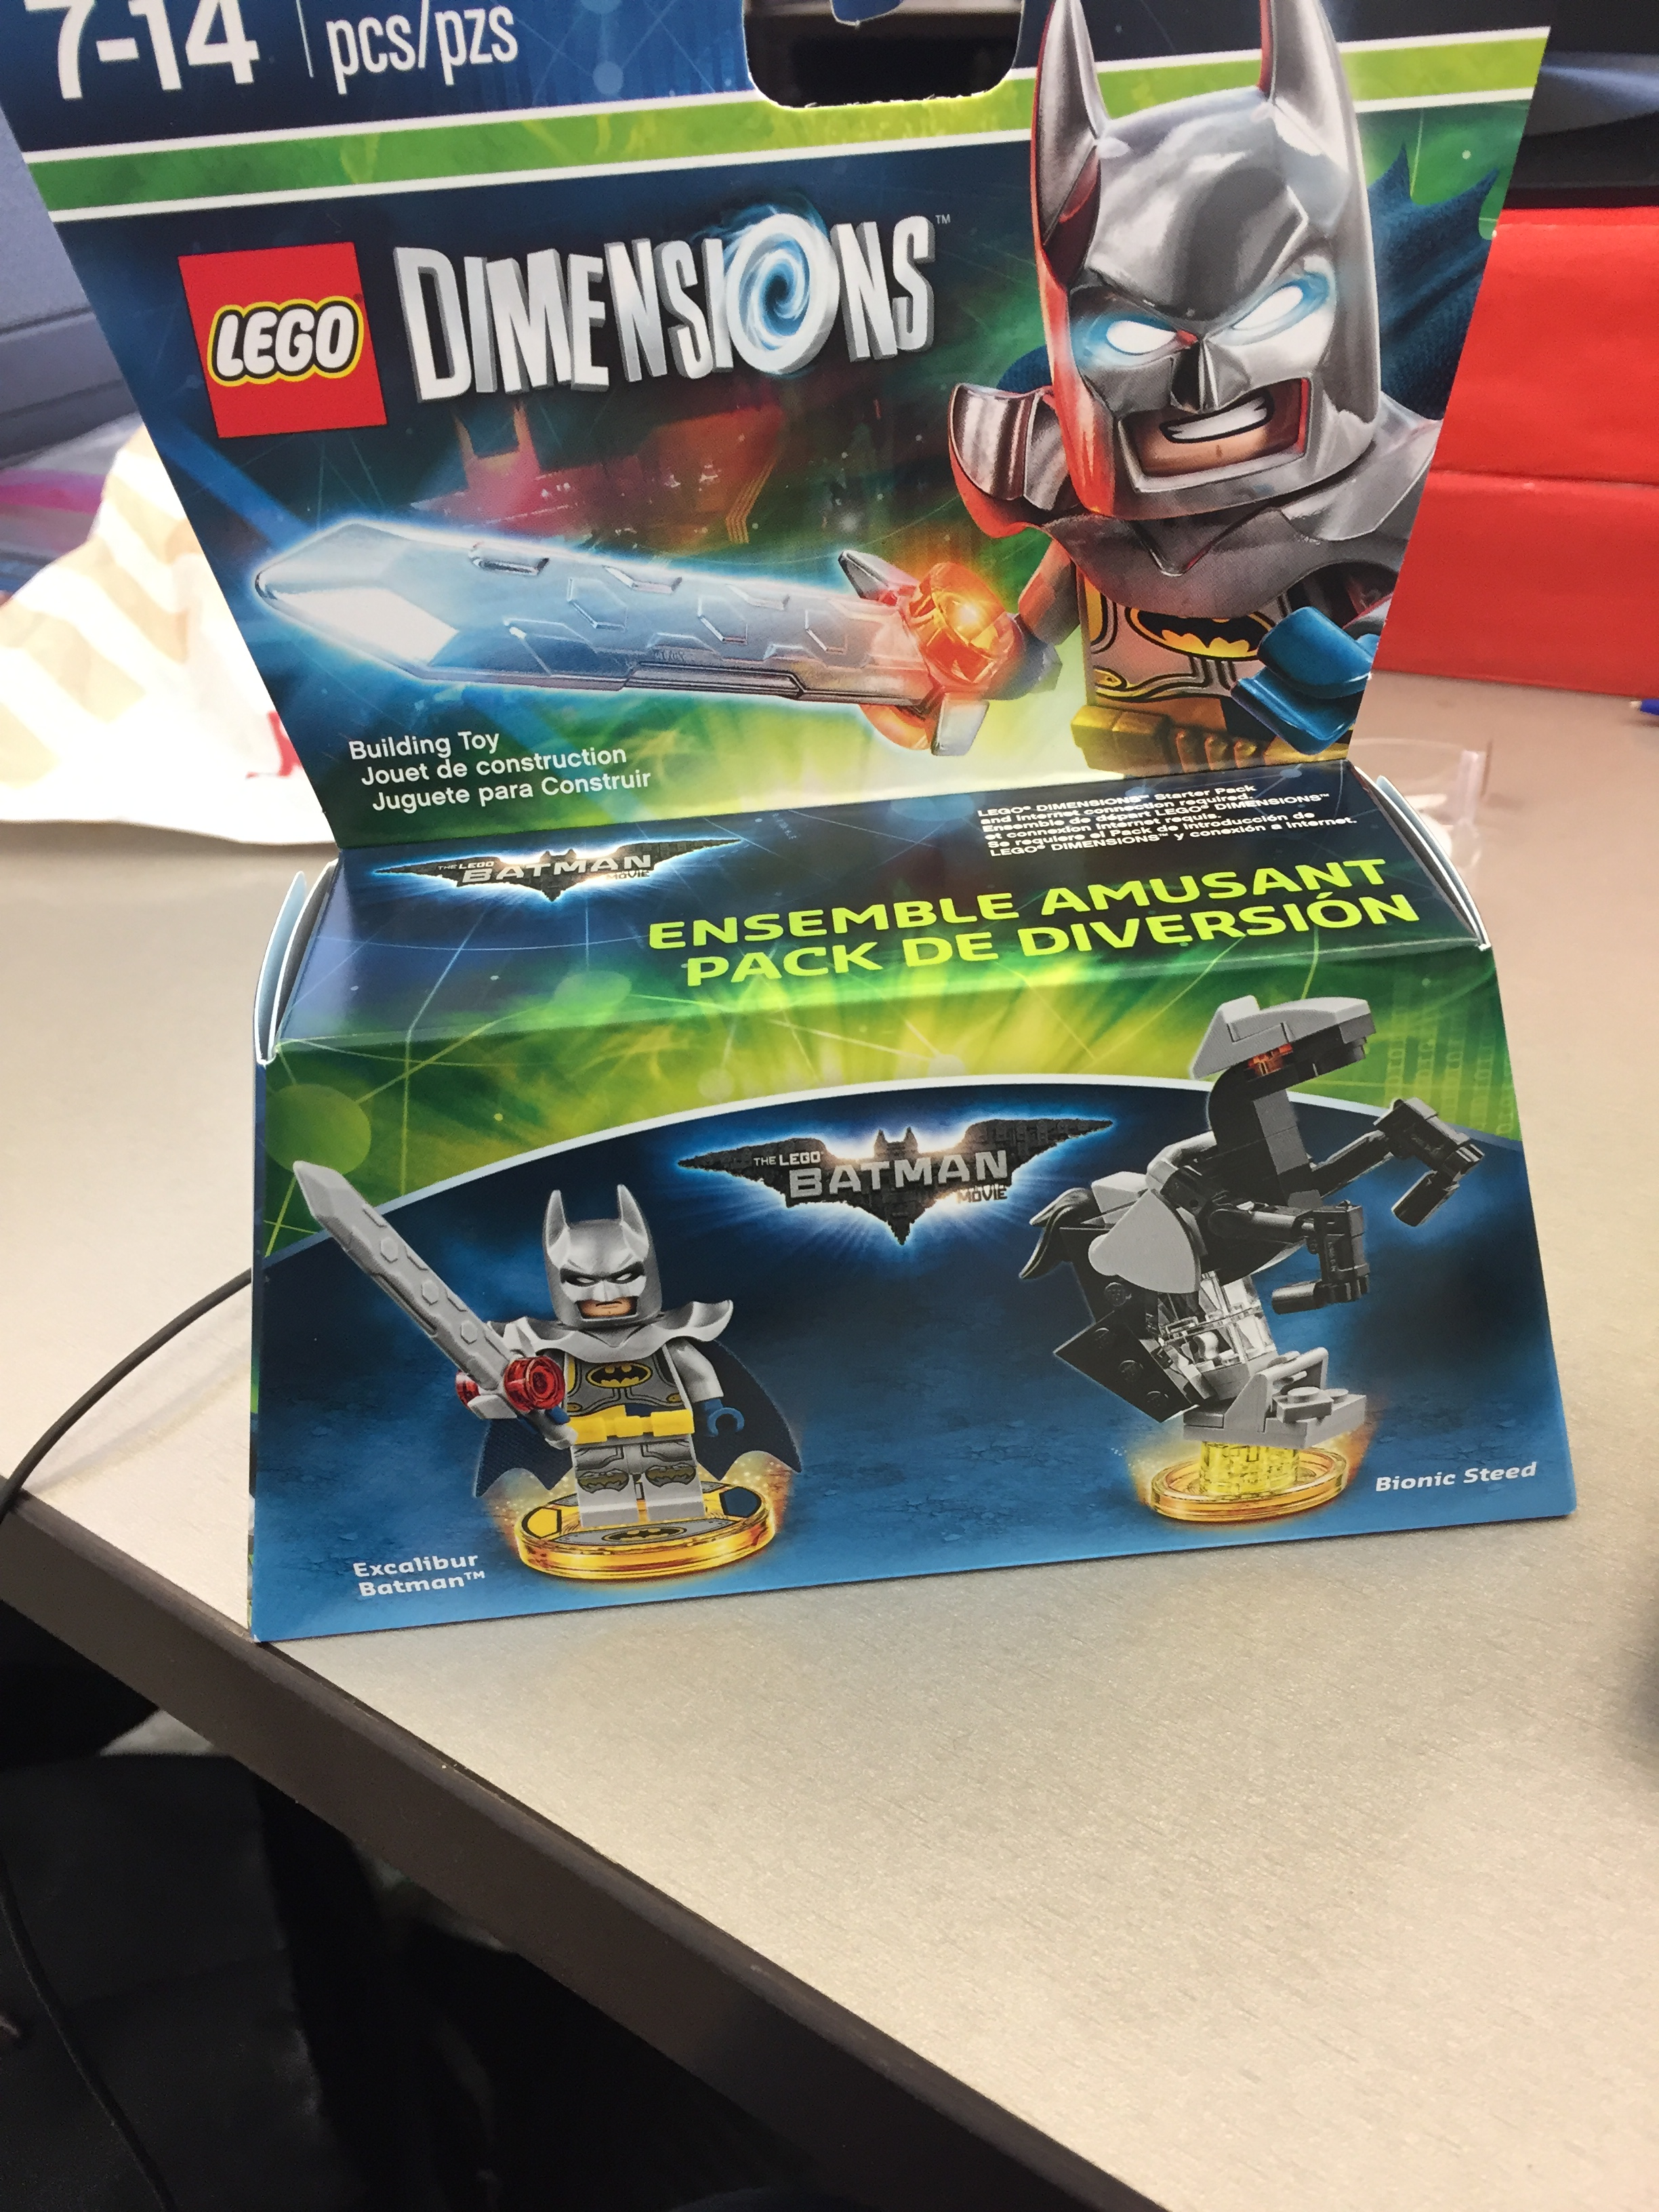 Lego The Dimensions Batman Excalibur For Available Movie DEIYWH29